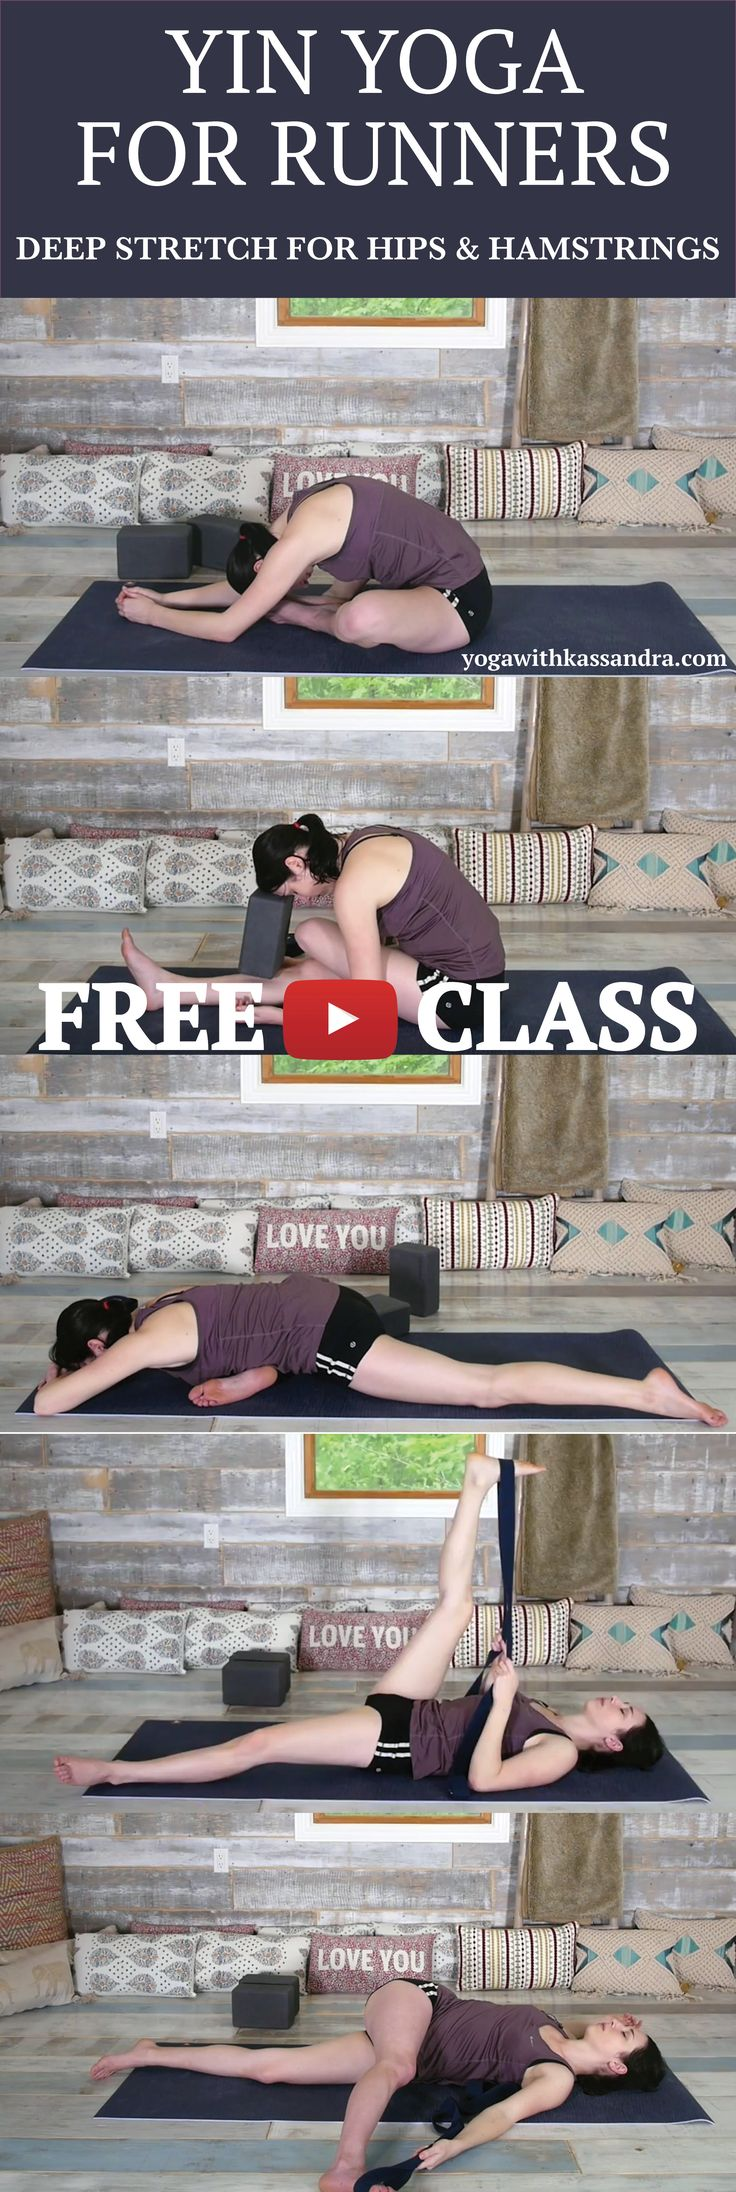 Yoga for runners is one of the videos I get the most requests for. And although yoga for runners was one of the first videos that I created on my channel, I thought it was time for a revamp (bigger and better right?)  As these are yin yoga poses, we move